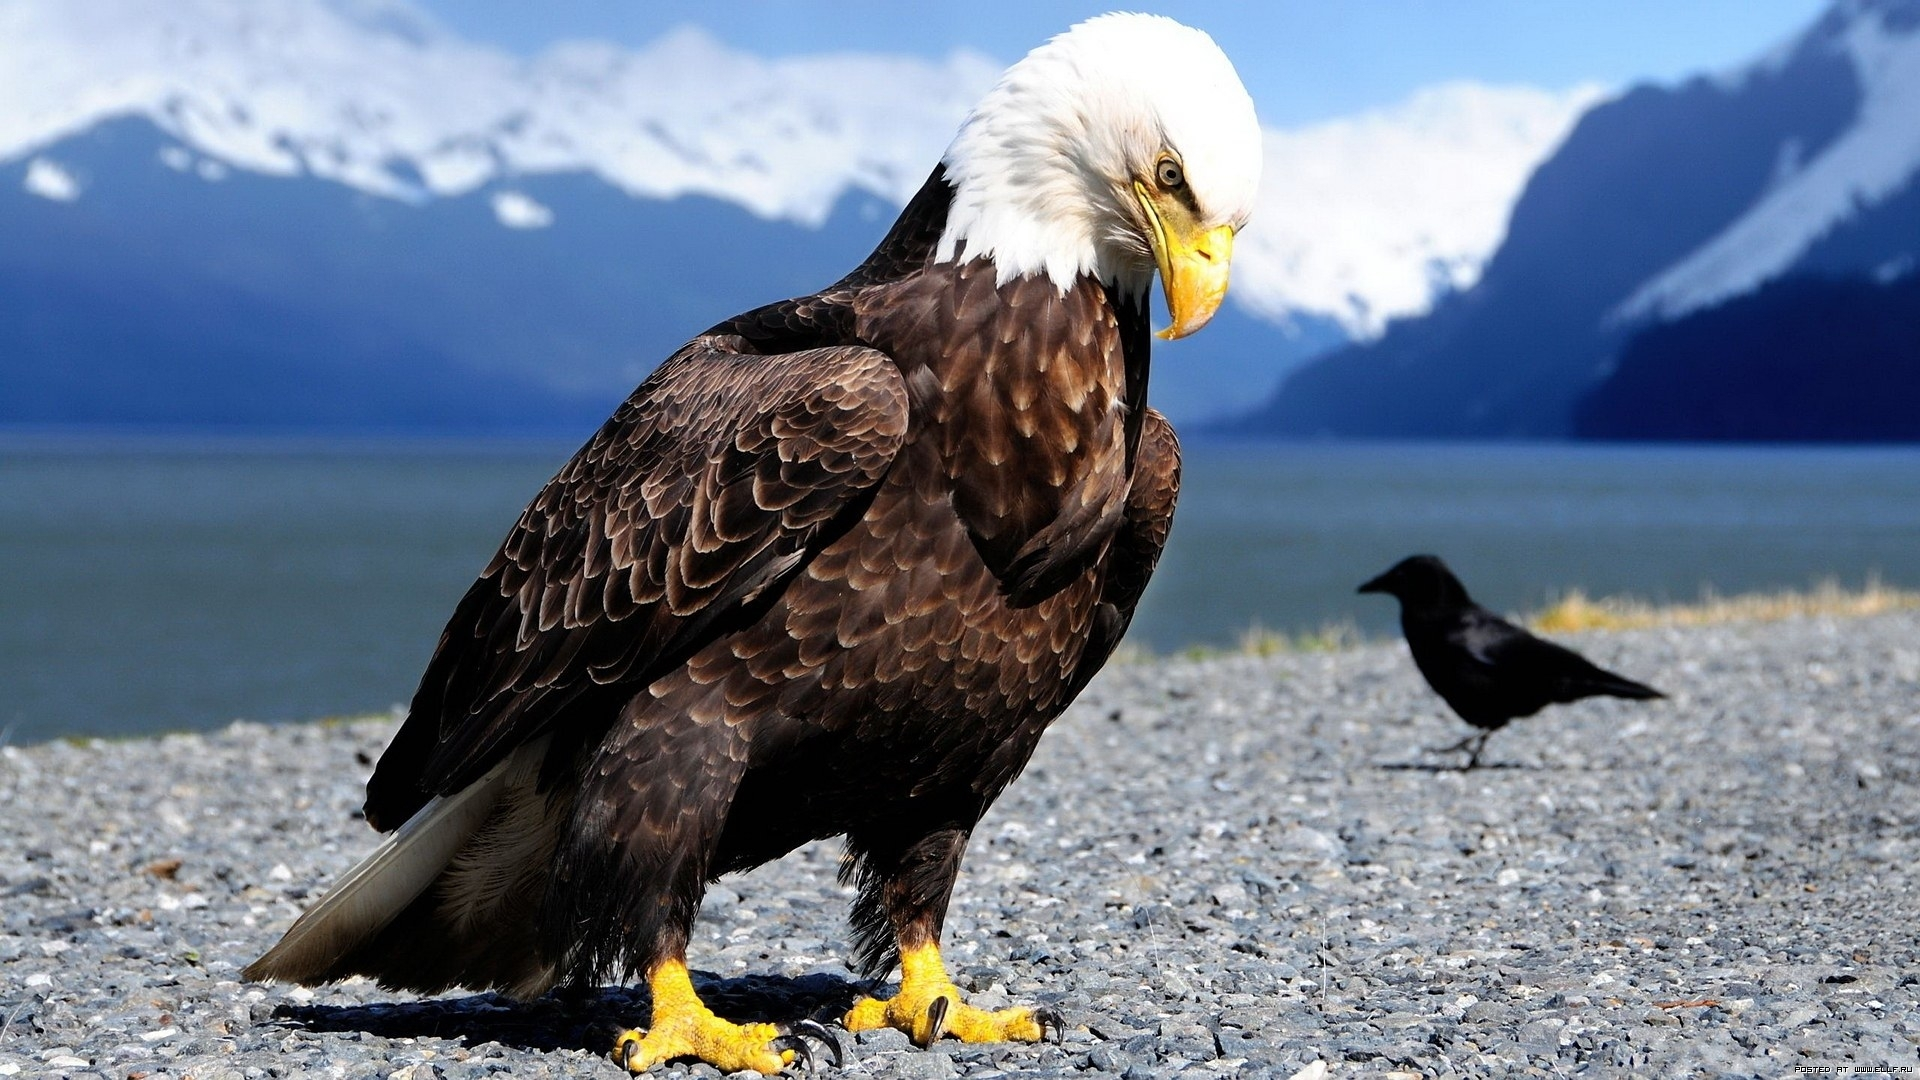 50275 download wallpaper Animals, Birds, Eagles screensavers and pictures for free